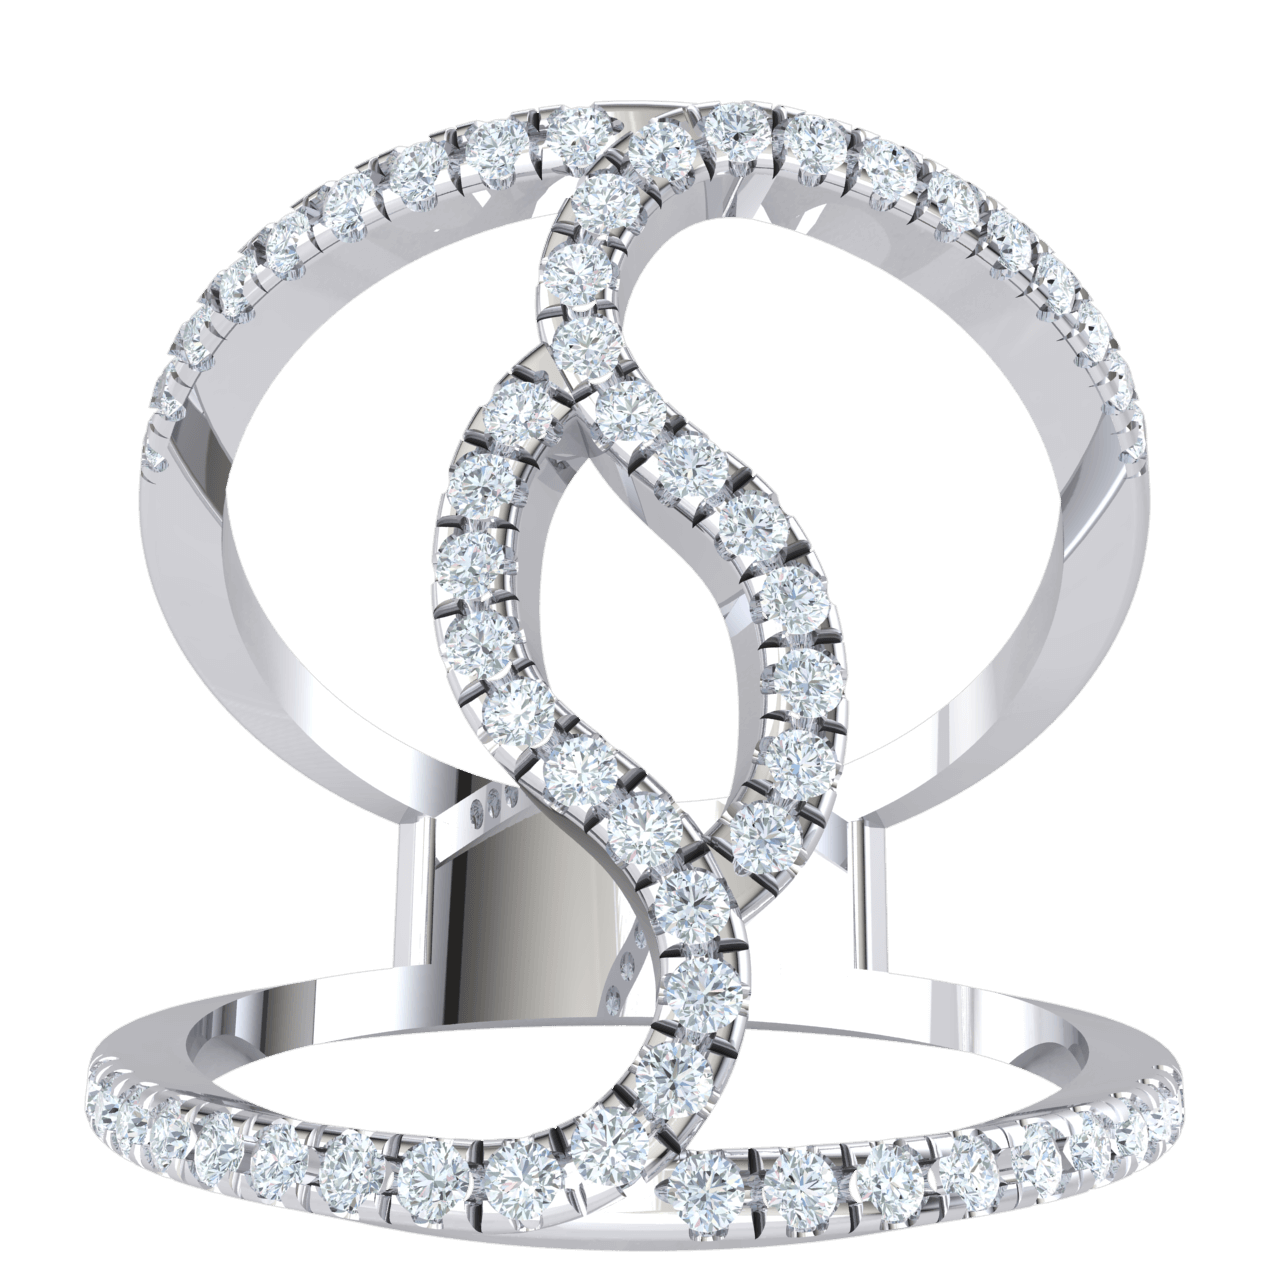 0.52 Ctw Truely Unique Real Double Band Swirled Together In A Sea Of Sparkling White Diamonds in JK I1 10 kt Gold